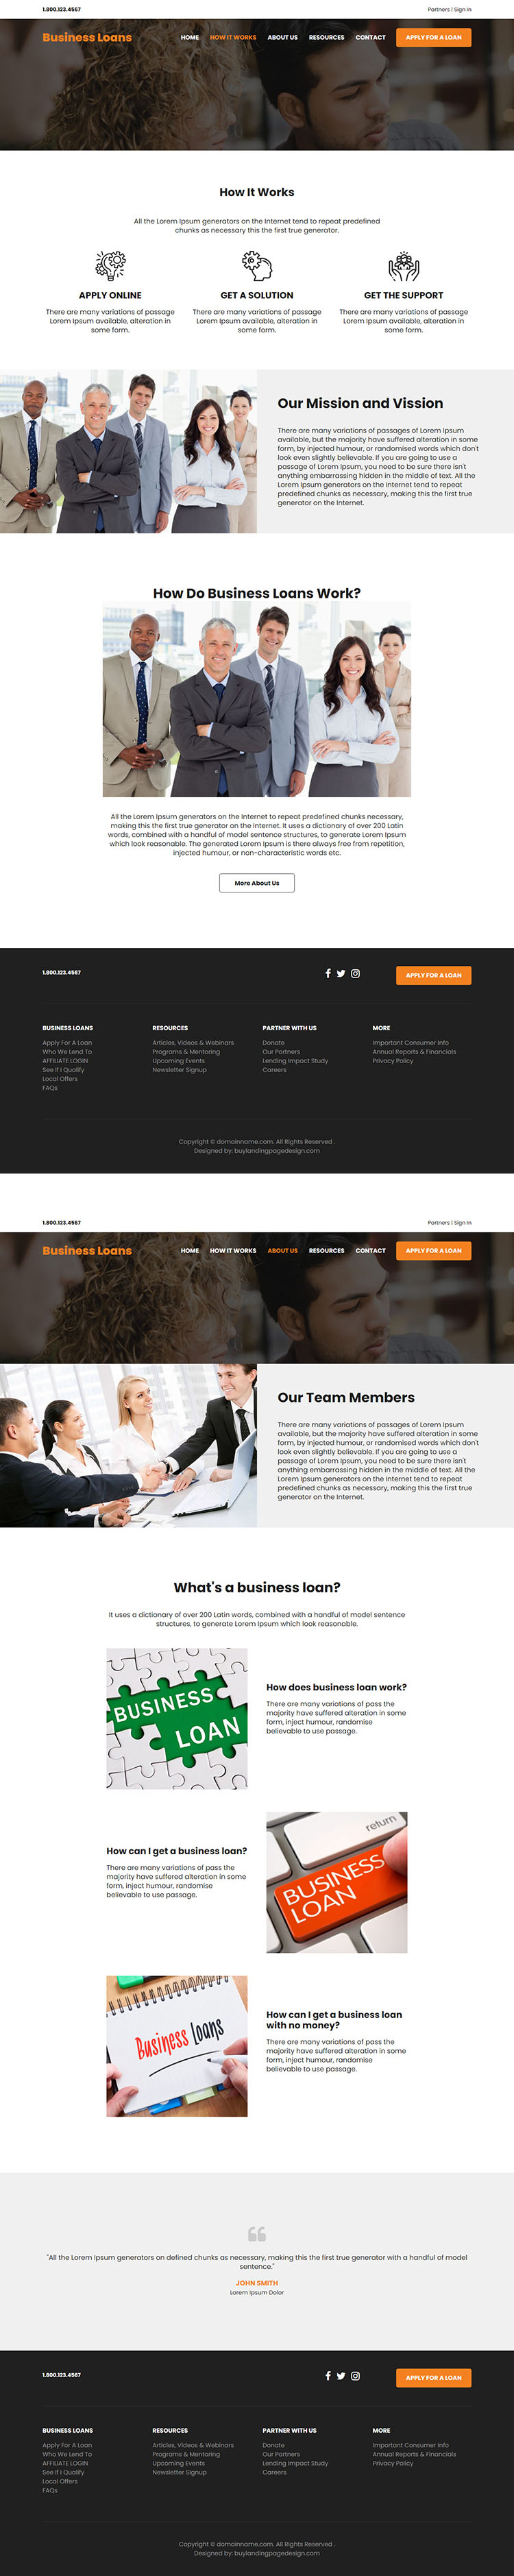 affordable small business loan responsive website design